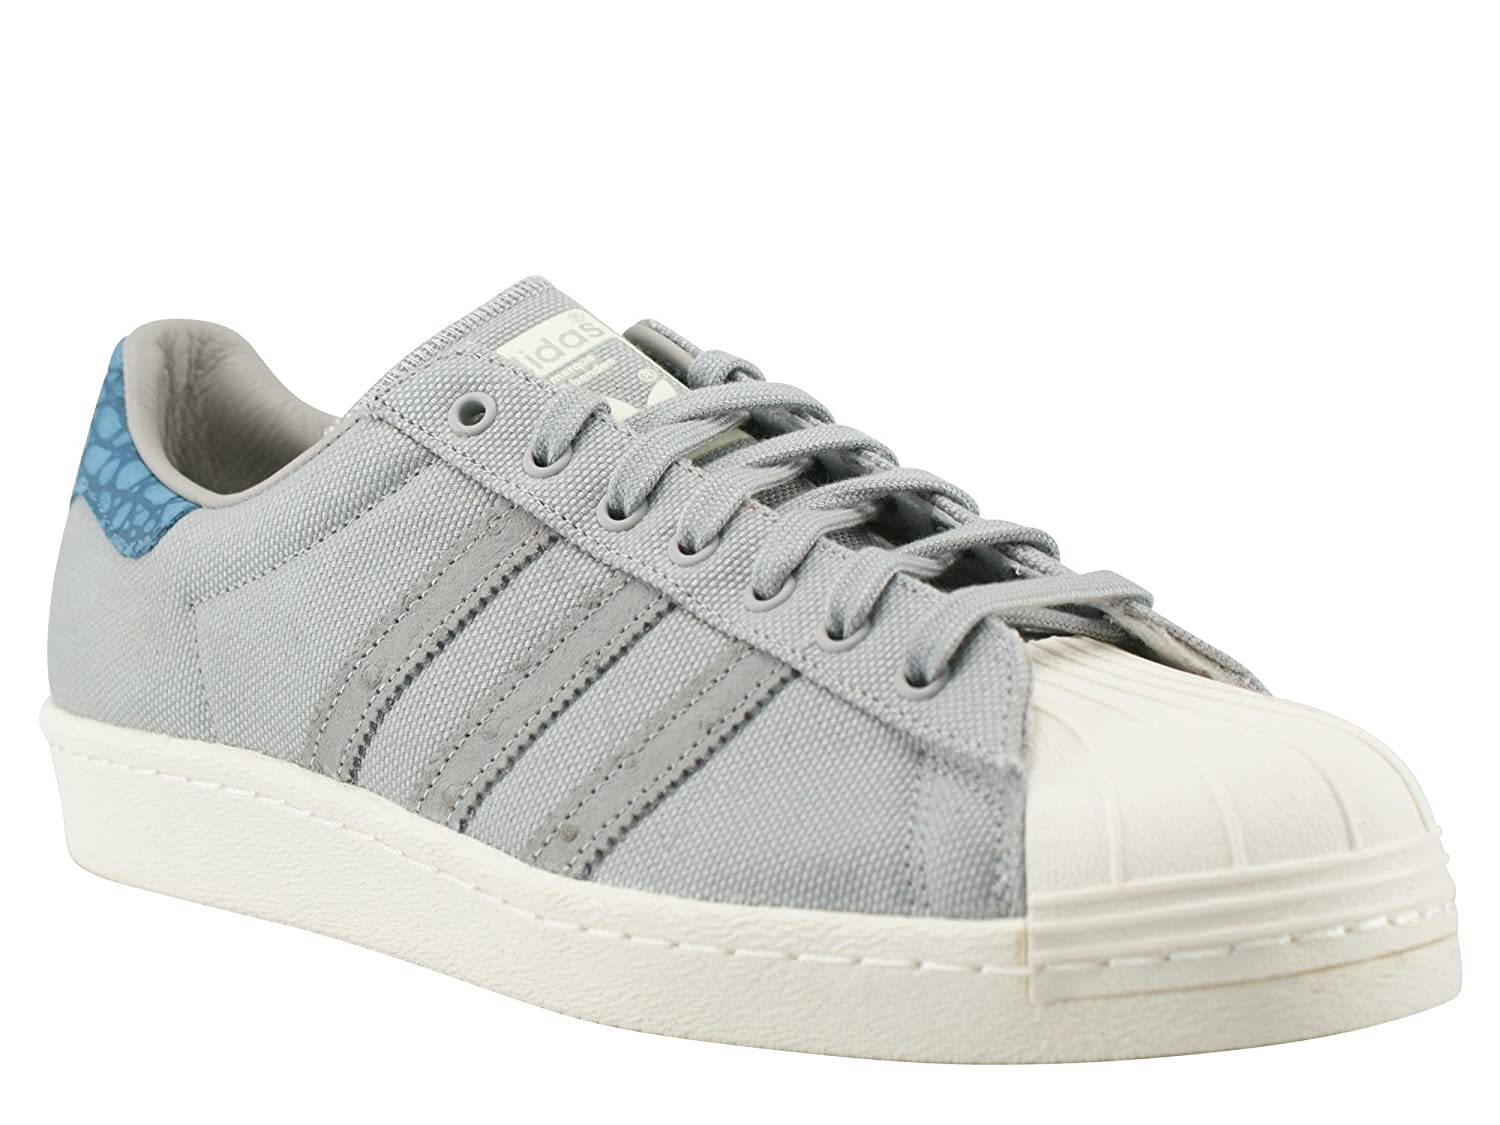 size 40 2ded3 129cc adidas Originals Superstar 80s Animal Oddity Sneaker Grey S75005, Size44  Amazon.co.uk Shoes  Bags